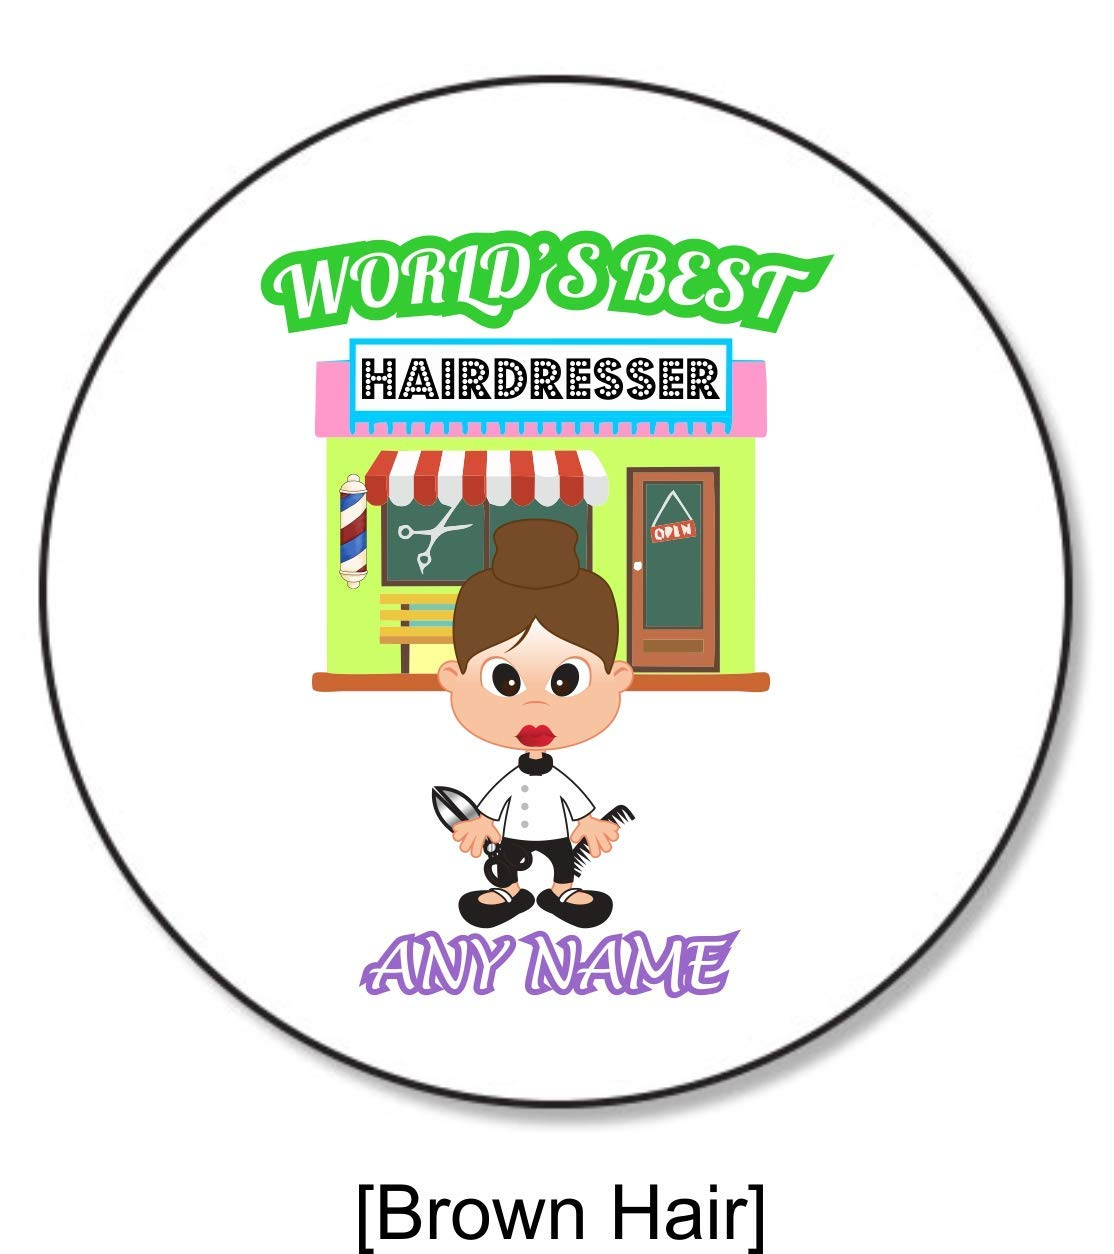 Personalised Gift Worlds Best Barber Hairdresser Coaster Stylist Beautician Hair Salon Work Present Idea For Her